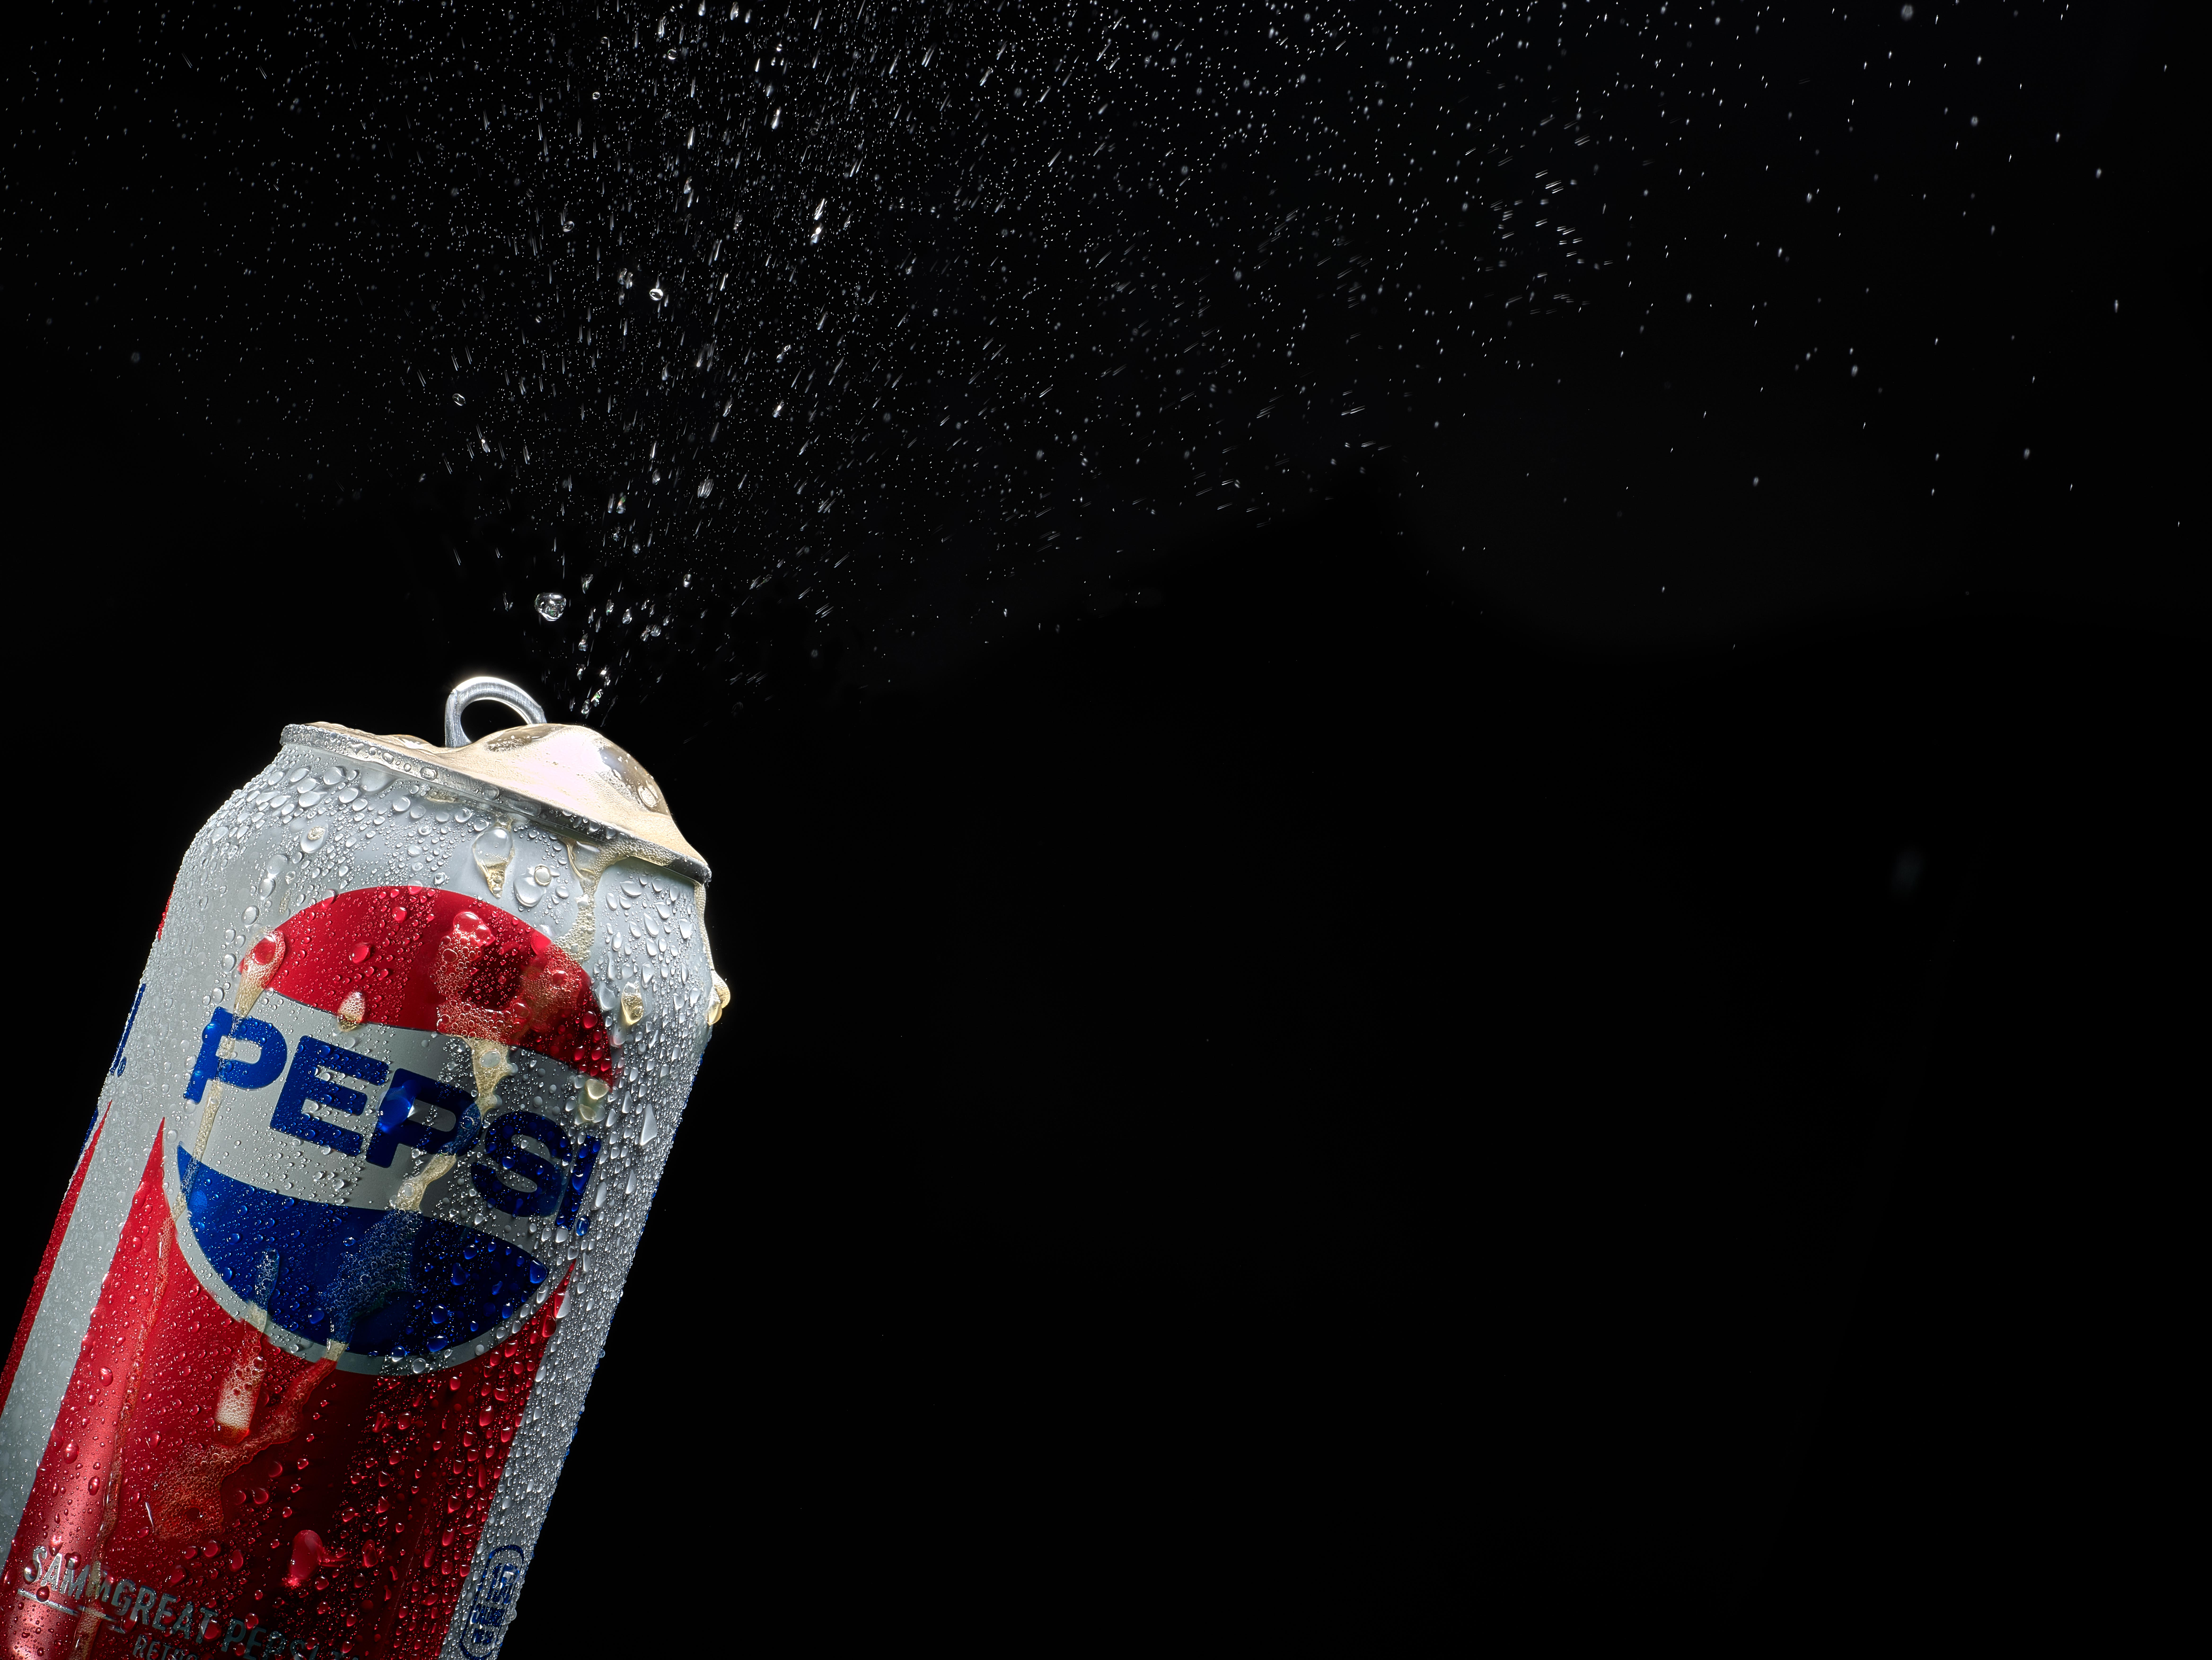 Pepsi cans showing action of soda spraying into the air